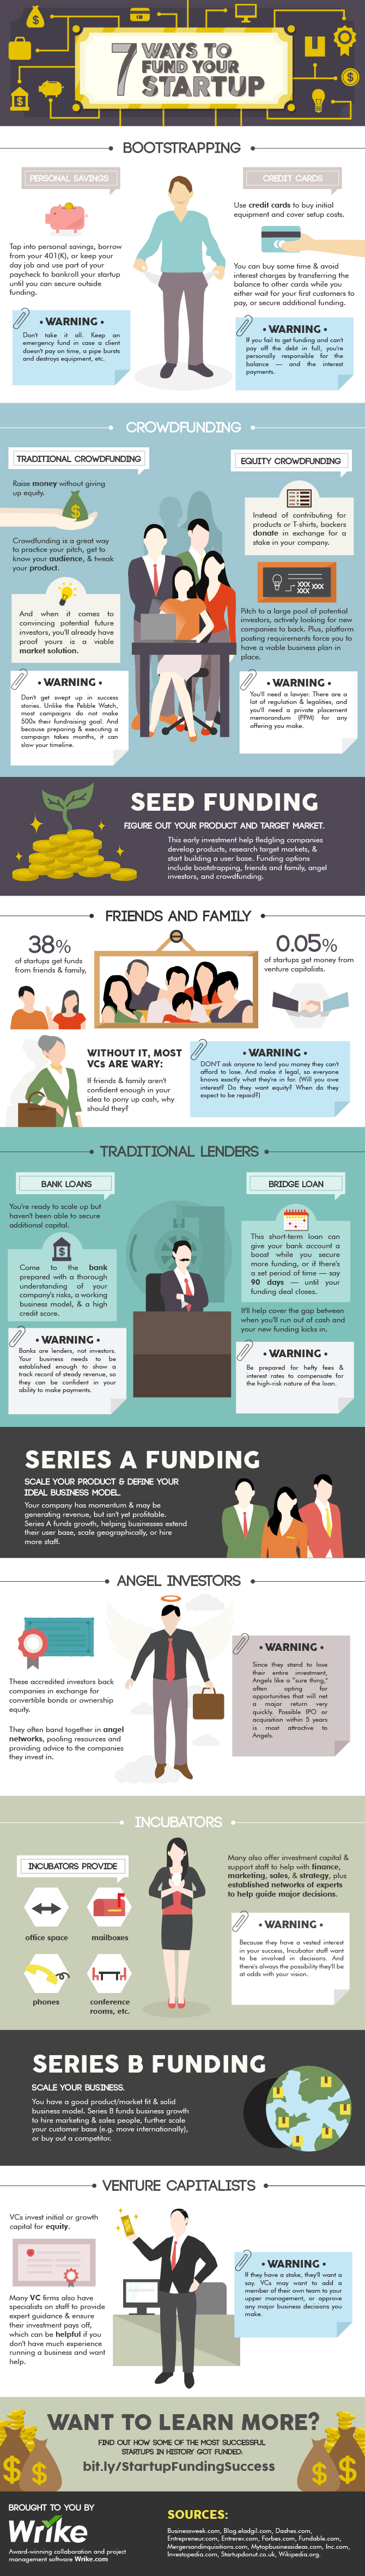 7 Ways to Fund Your Startup